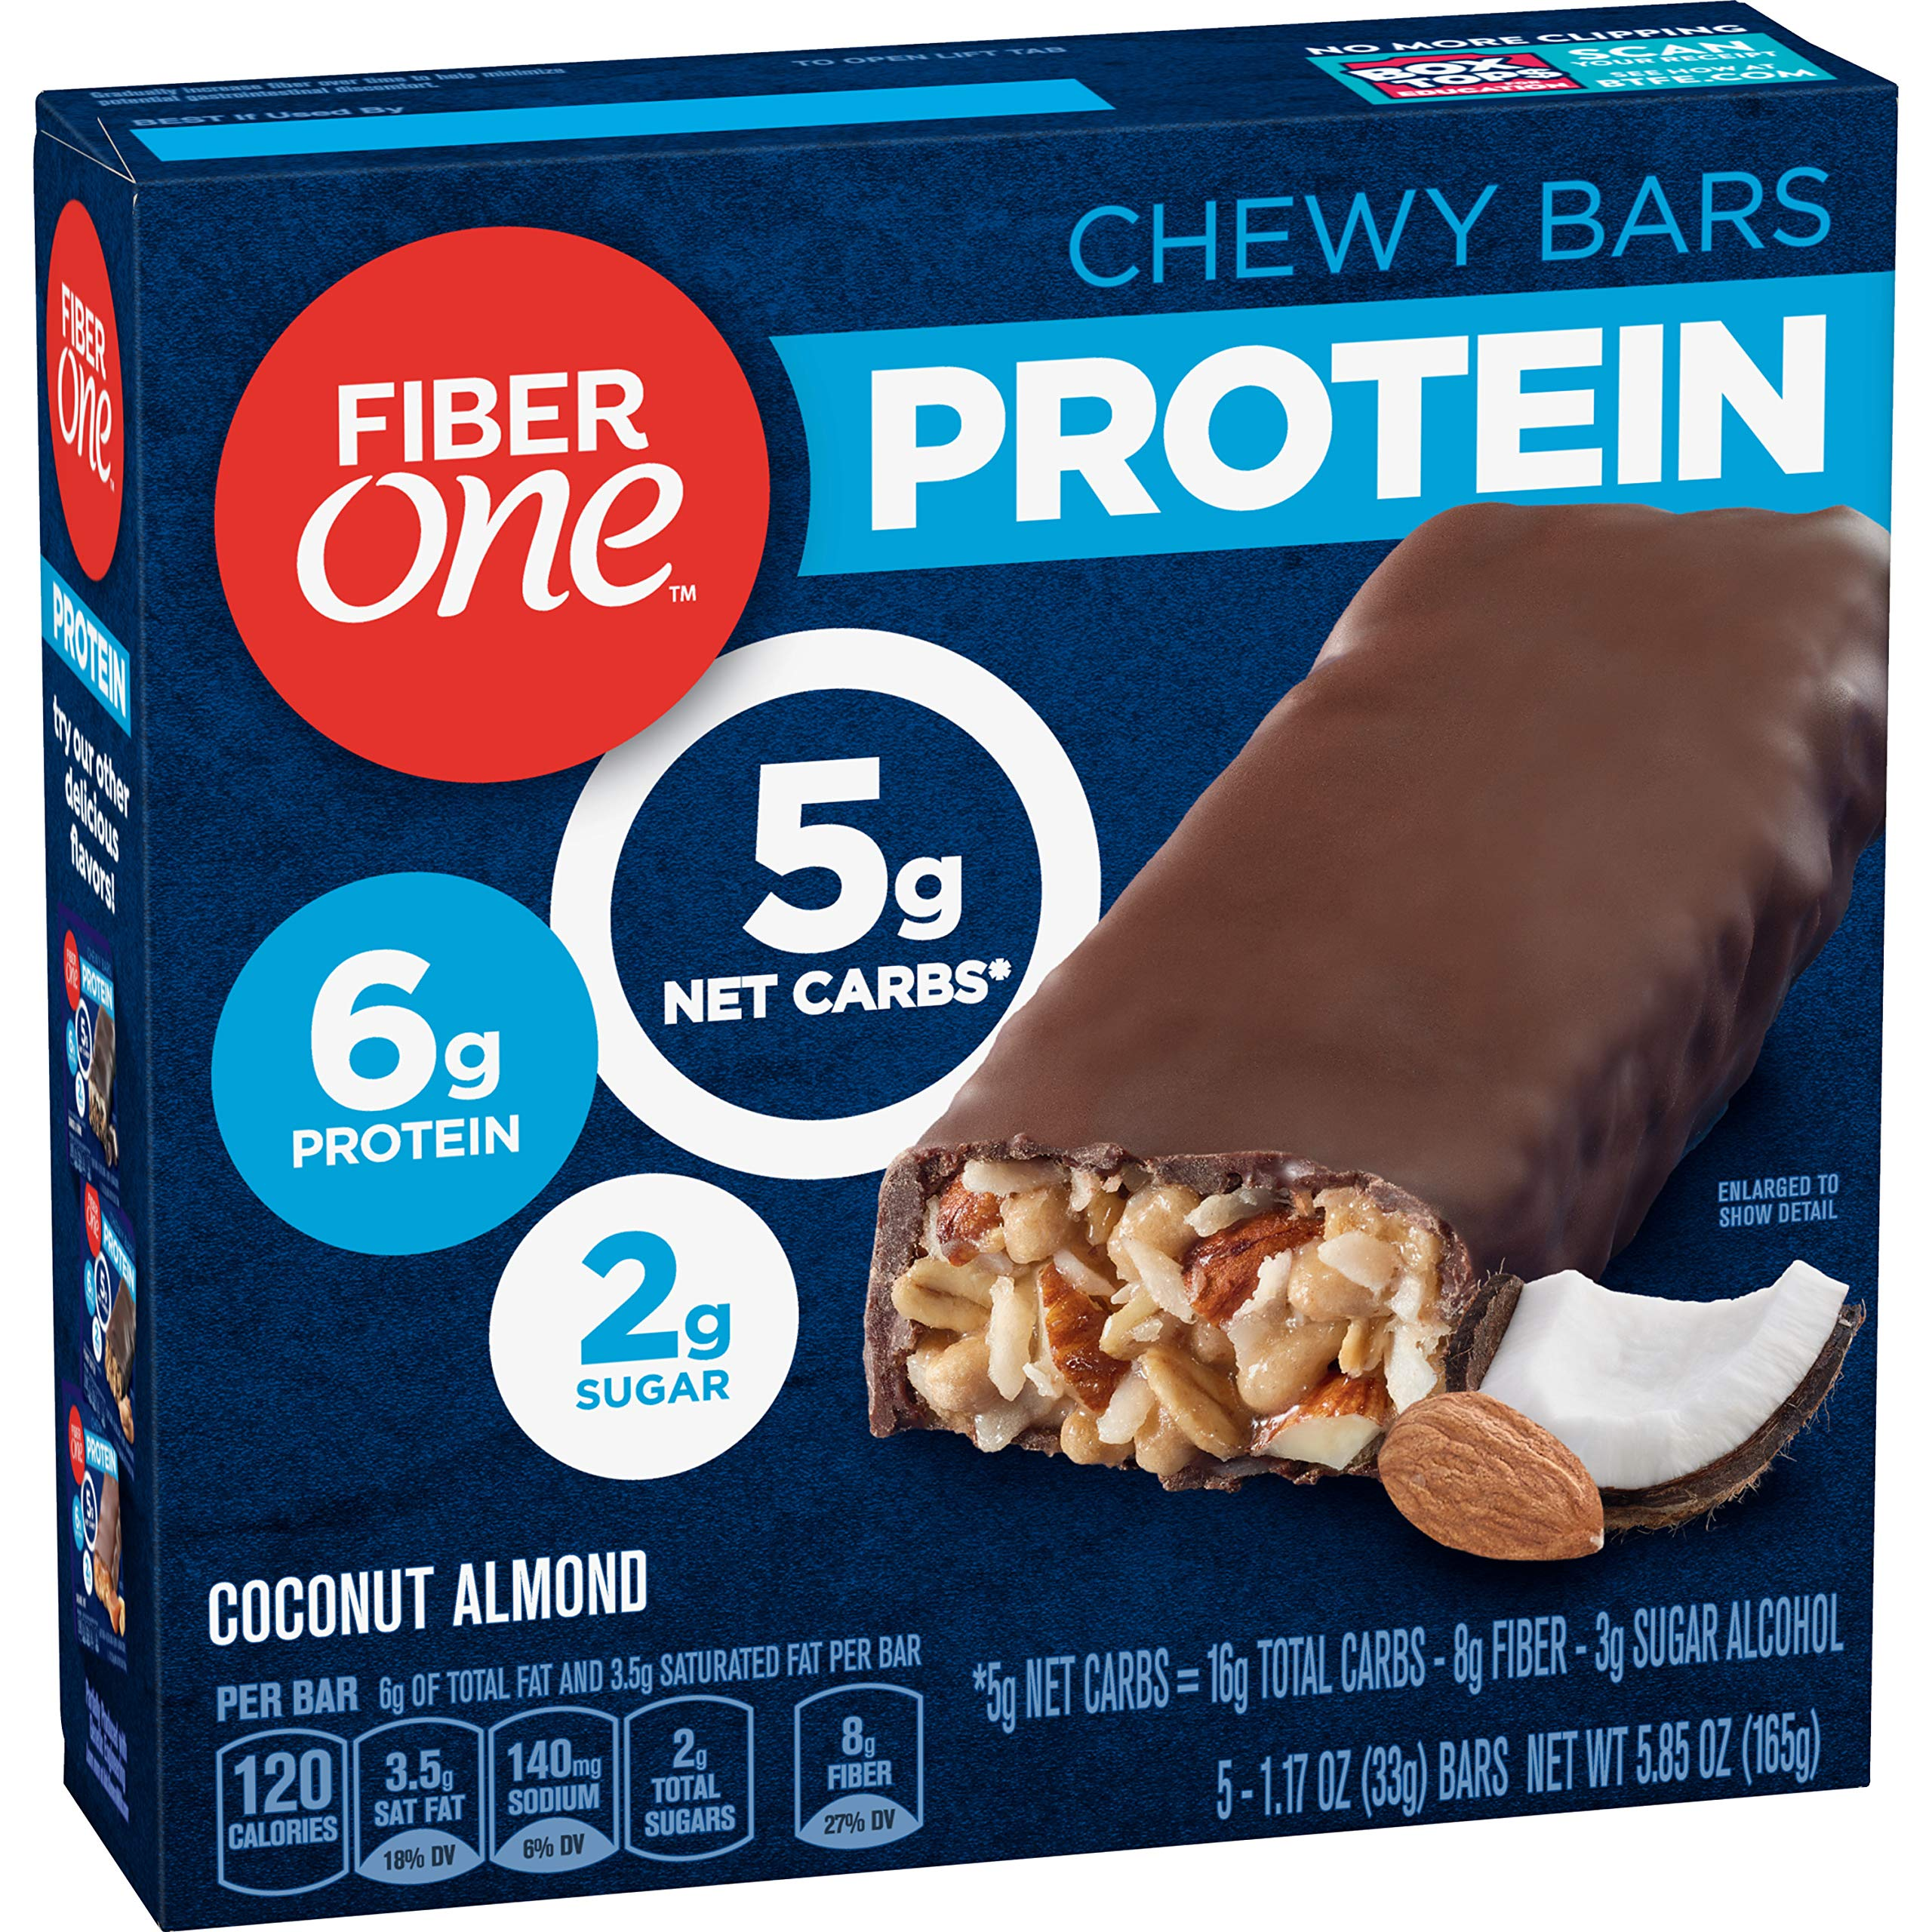 Fiber One Protein Bar, Coconut Almond Chewy Bars, 5 Count Fiber Bars,Pack of 6 by Fiber One